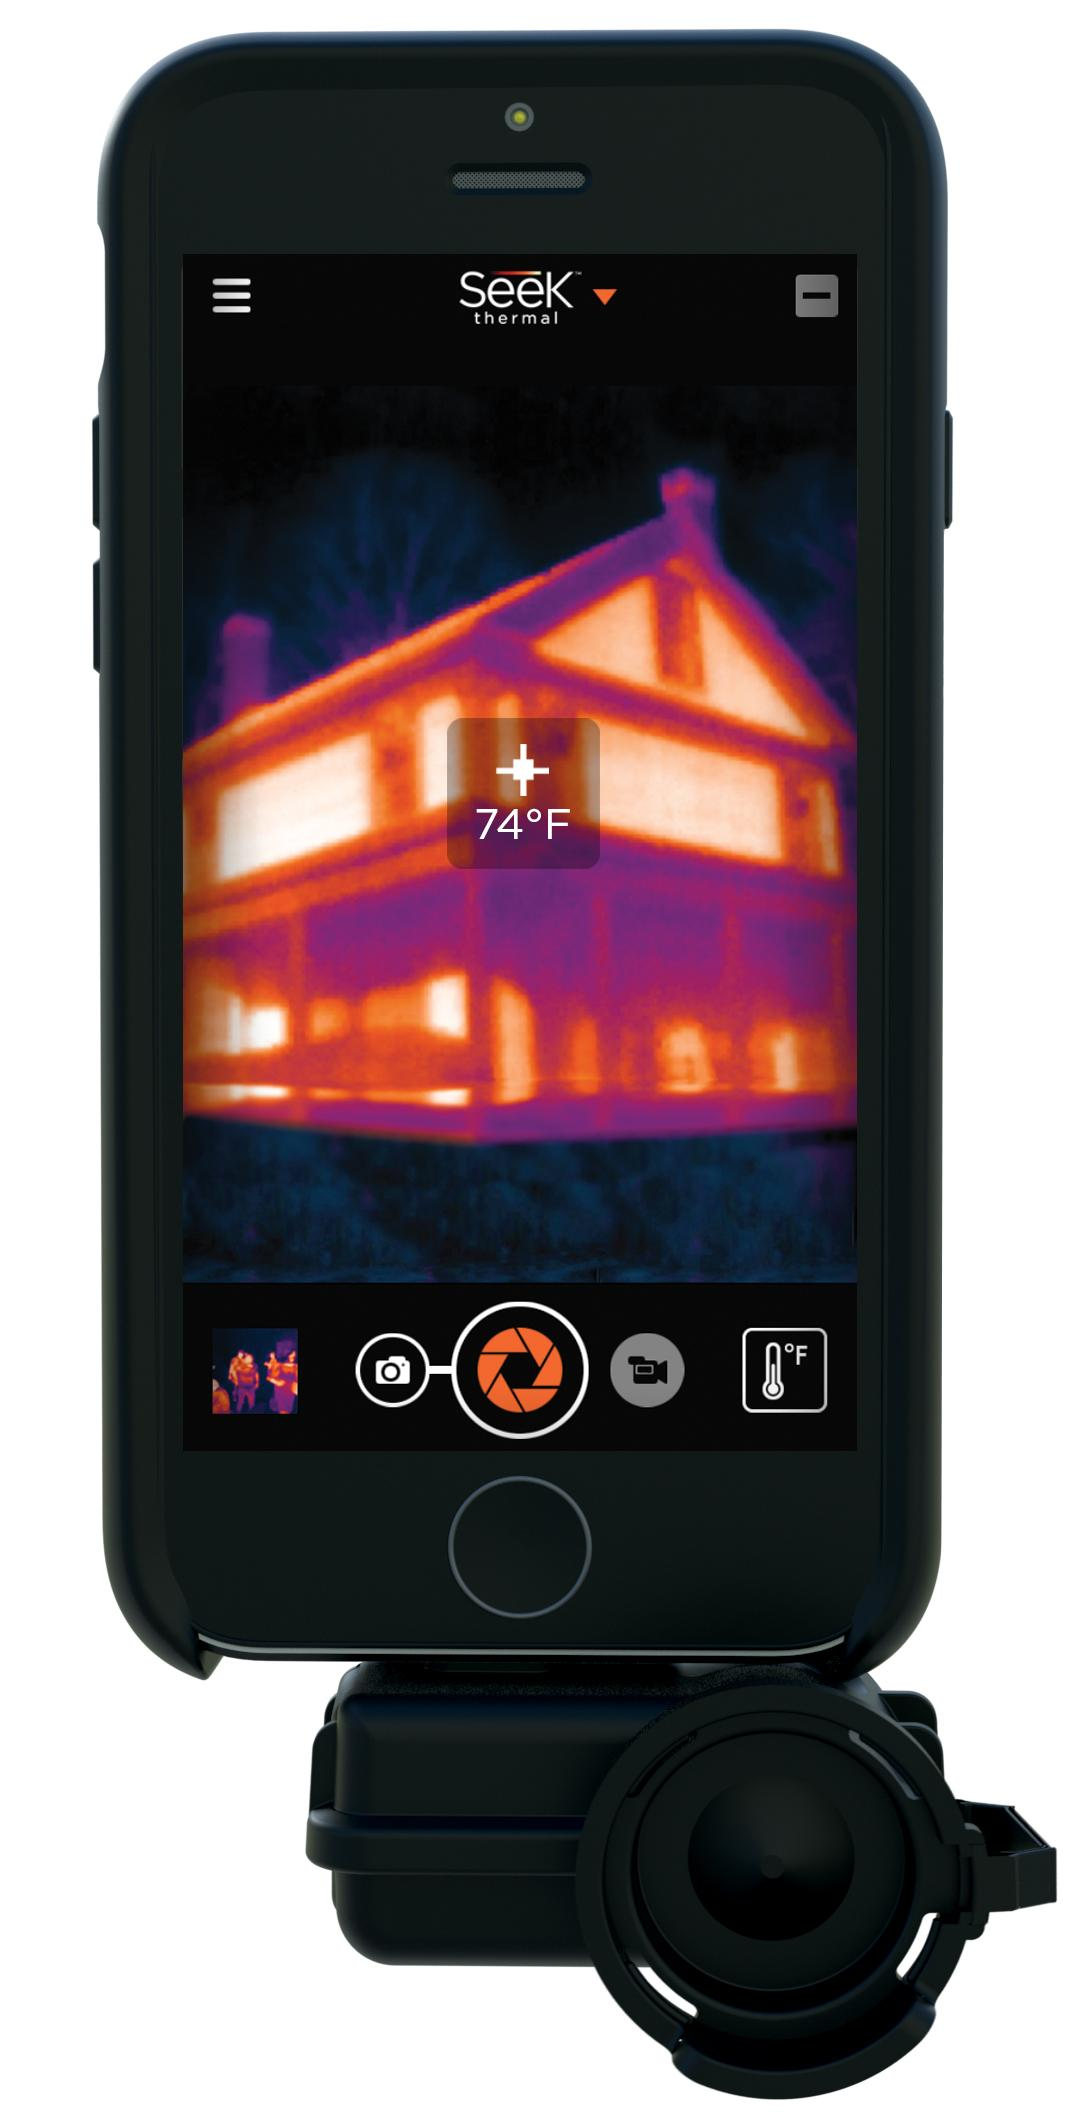 Amazon.com: Seek LW-AAO Compact 36° Thermal Imagers for